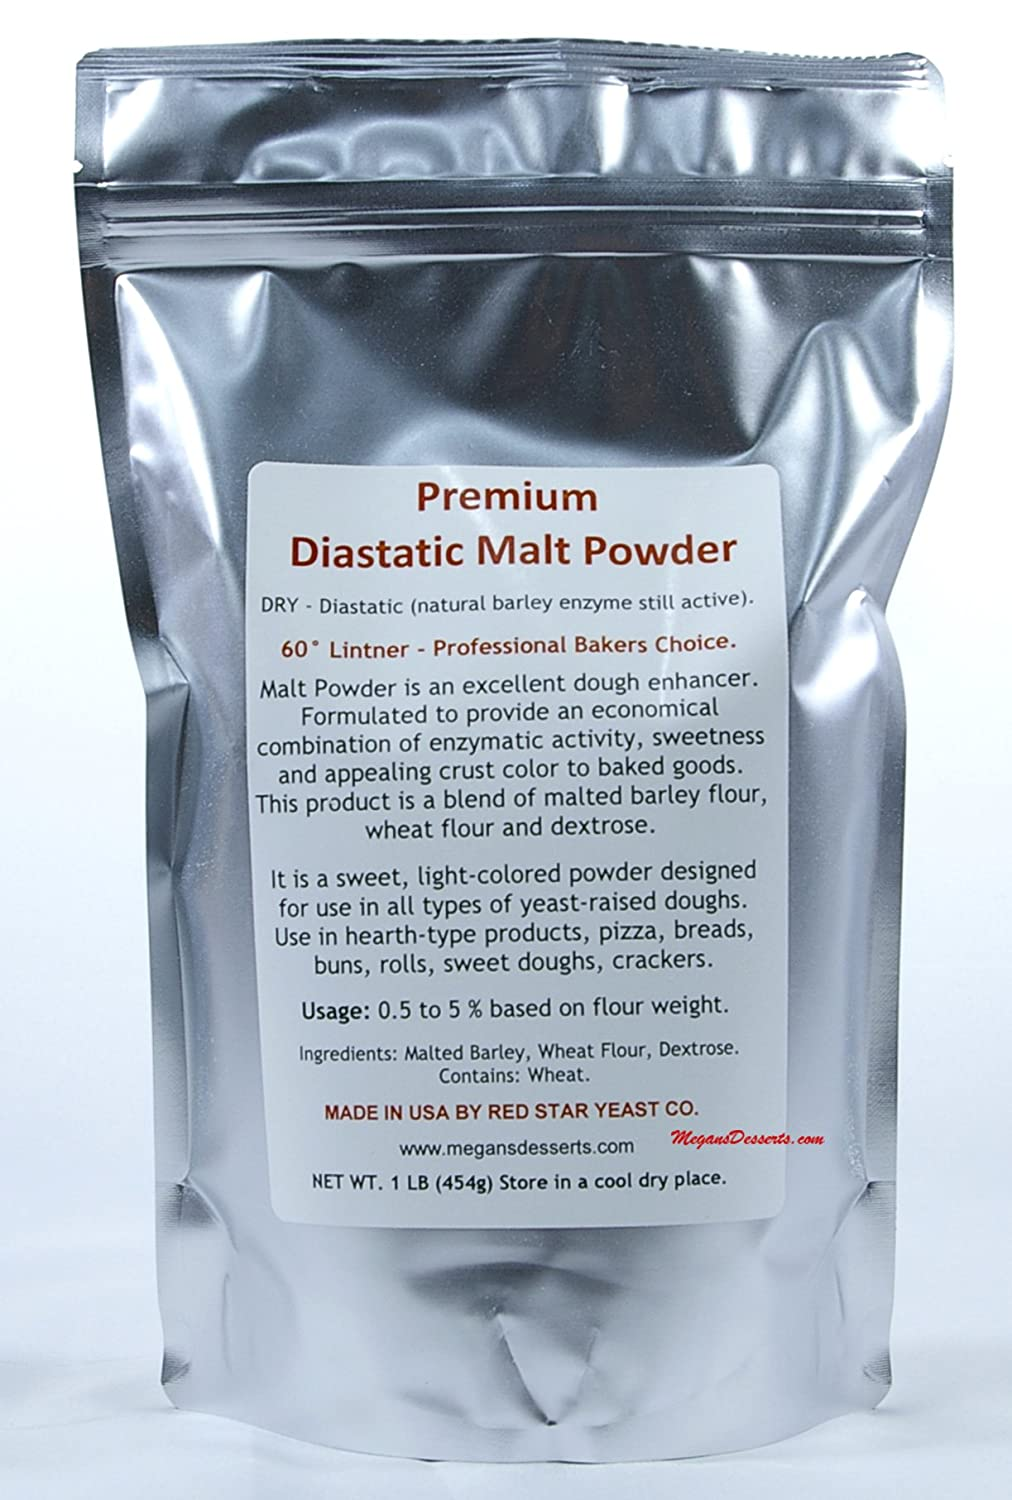 Diastatic Malt Powder 16 oz. - 1lb Bag OFFicial site Star Fashionable Red Made by Yeast